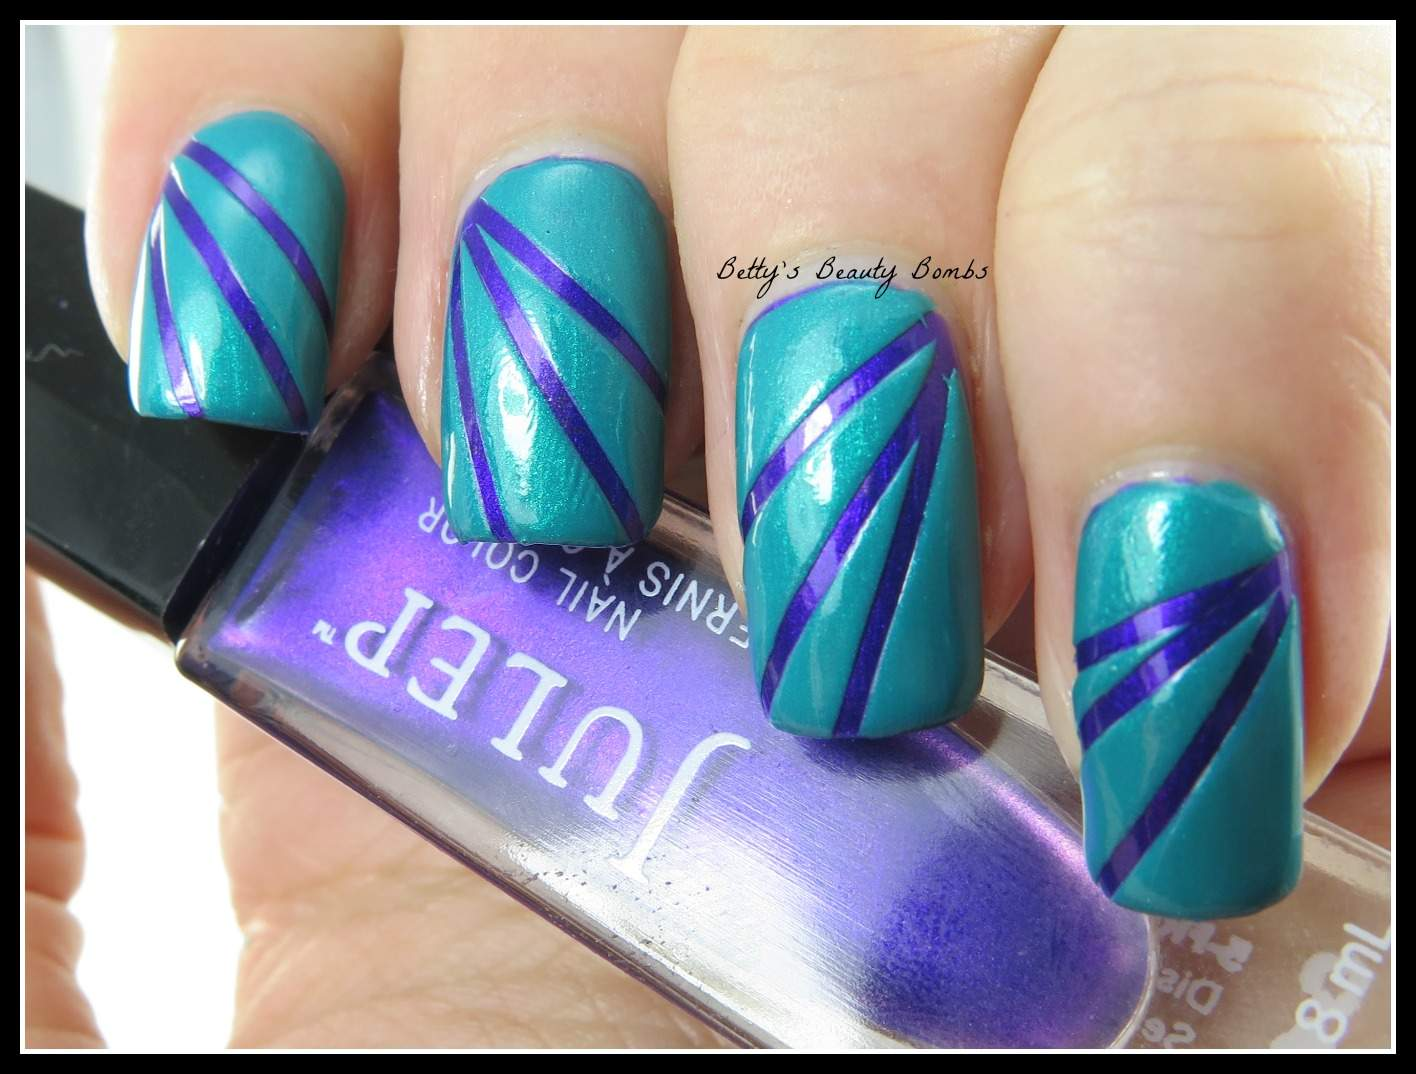 Striping Tape Nail Art for Golden Oldies Tuesday! - Lazy Betty